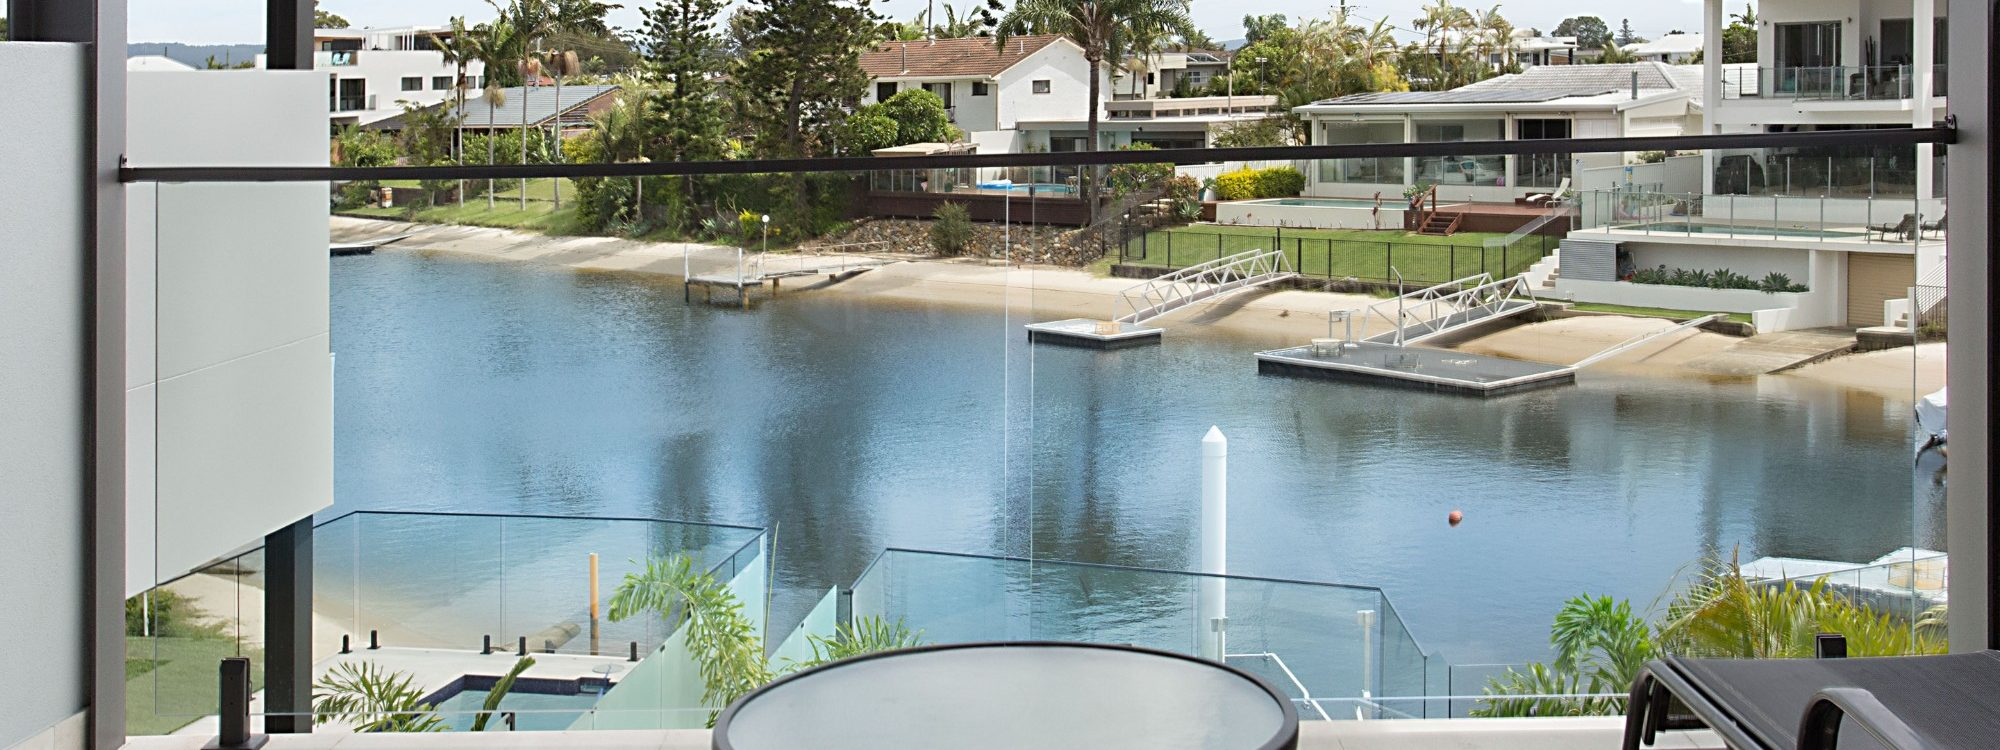 Bay Breeze - Broadbeach waters - Gold Coast - Balcony off Master Bedroom